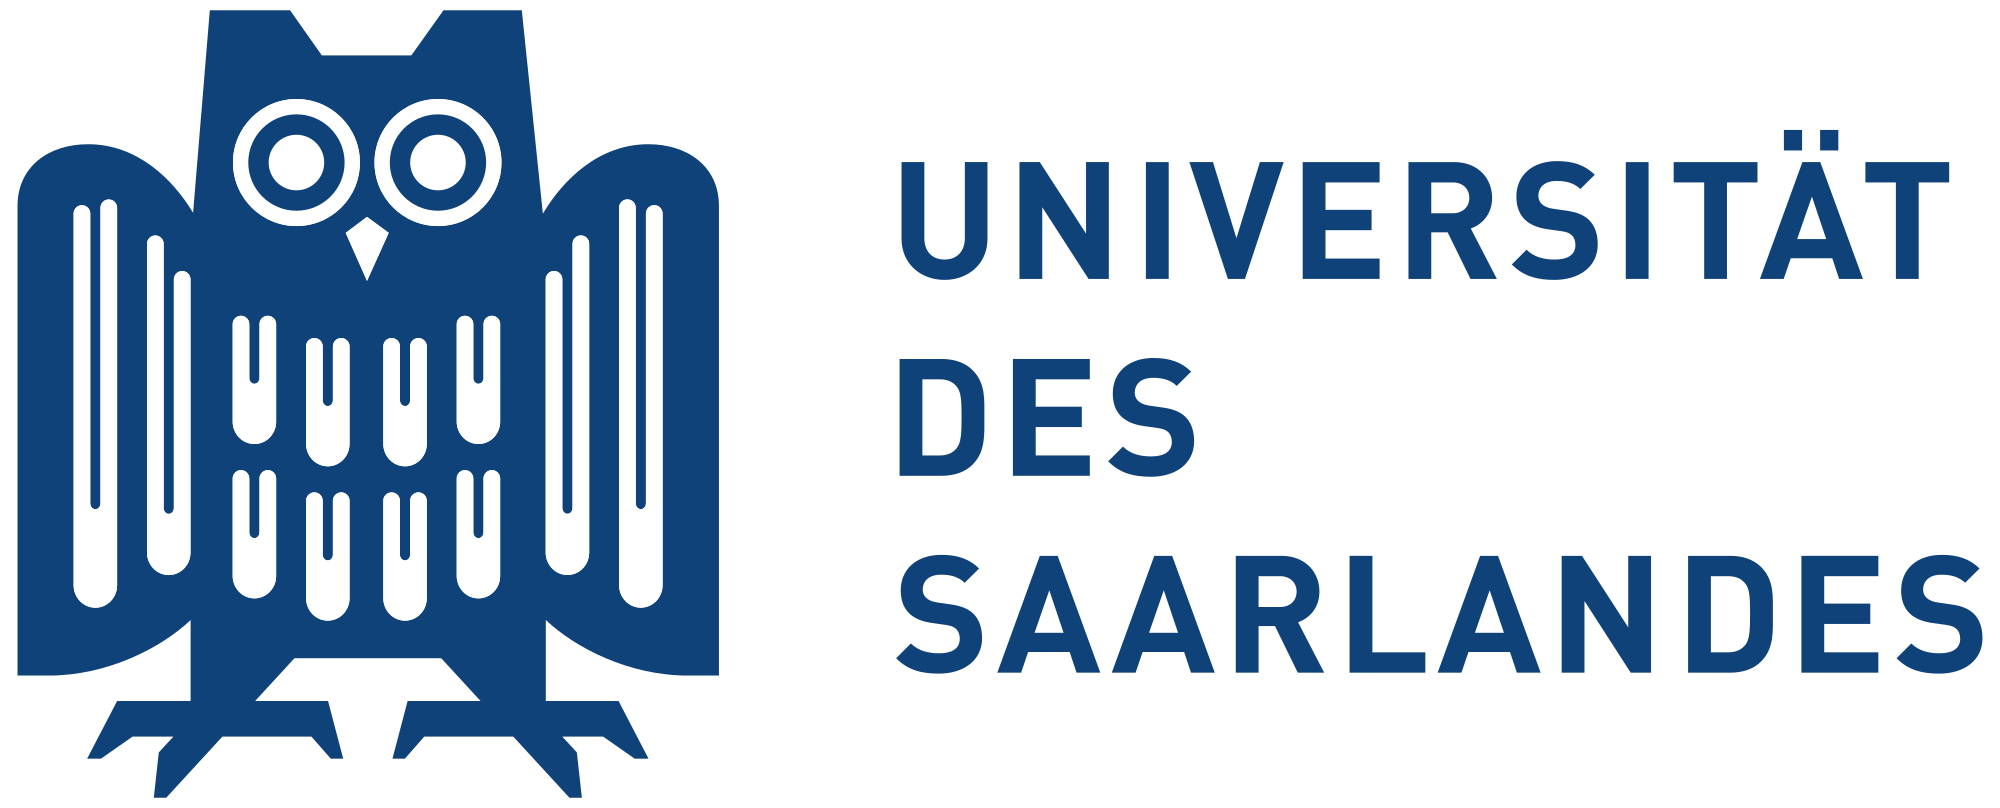 Saarland University, Institute for German Language